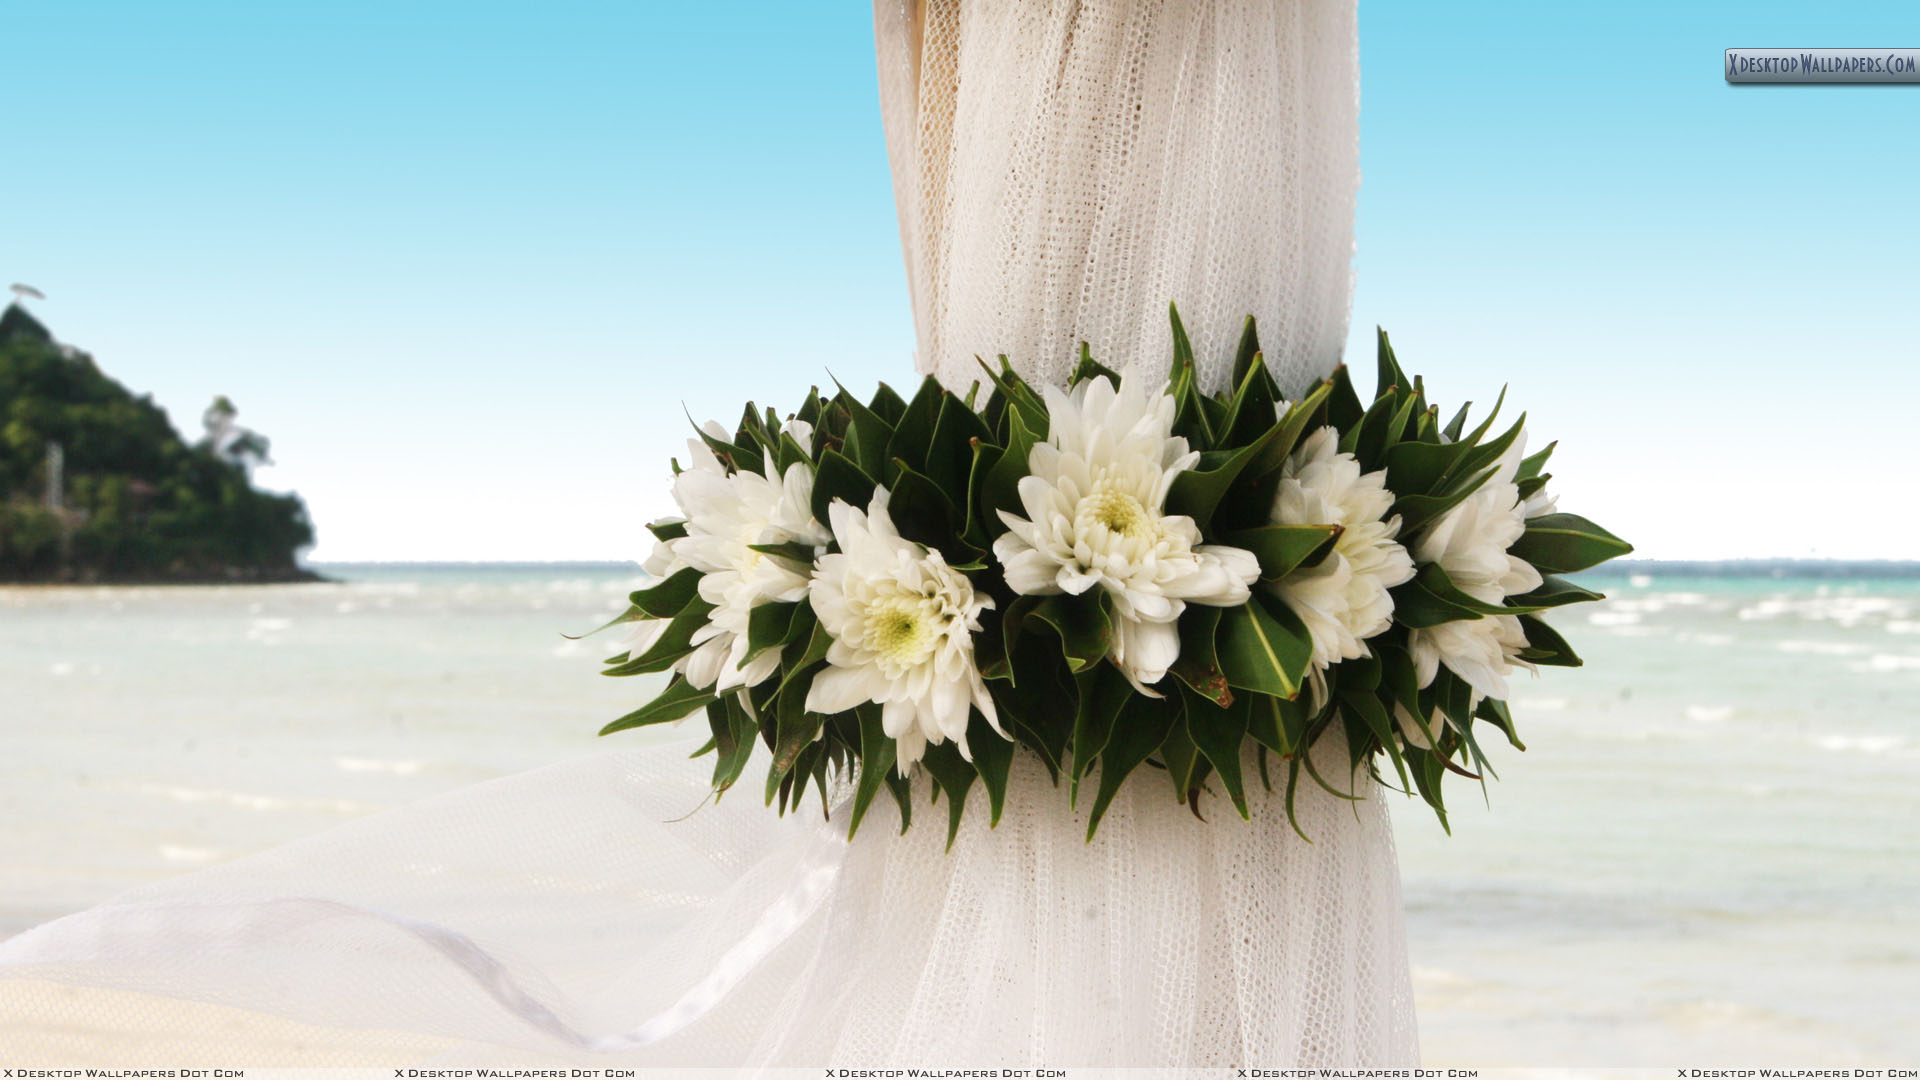 Wedding-Flowers-On-Curtains-Near-Beach.jpg